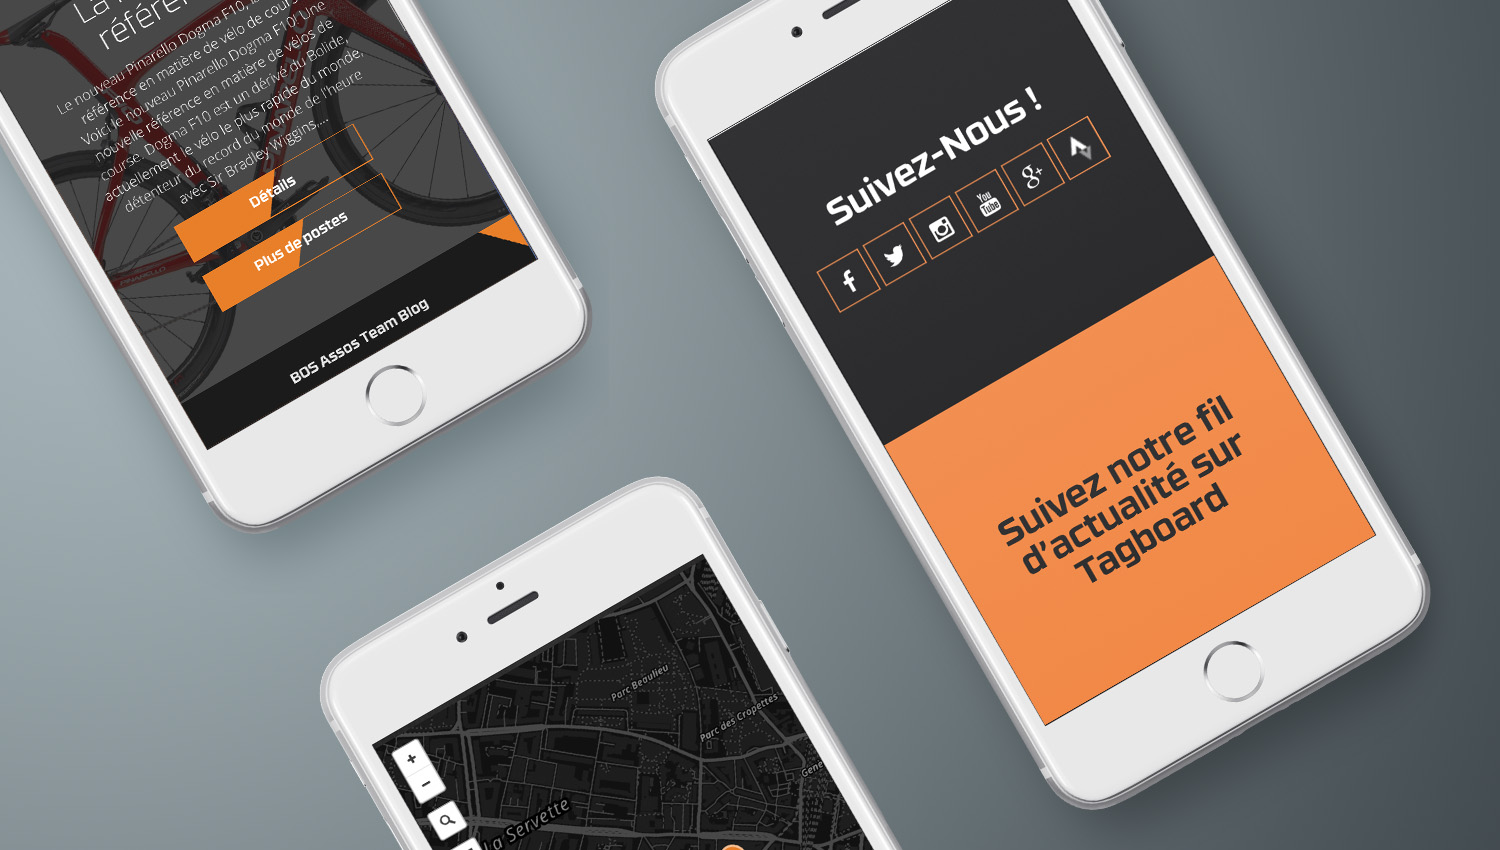 Web design mobile view for Bosbikes 3 by 8 Ways